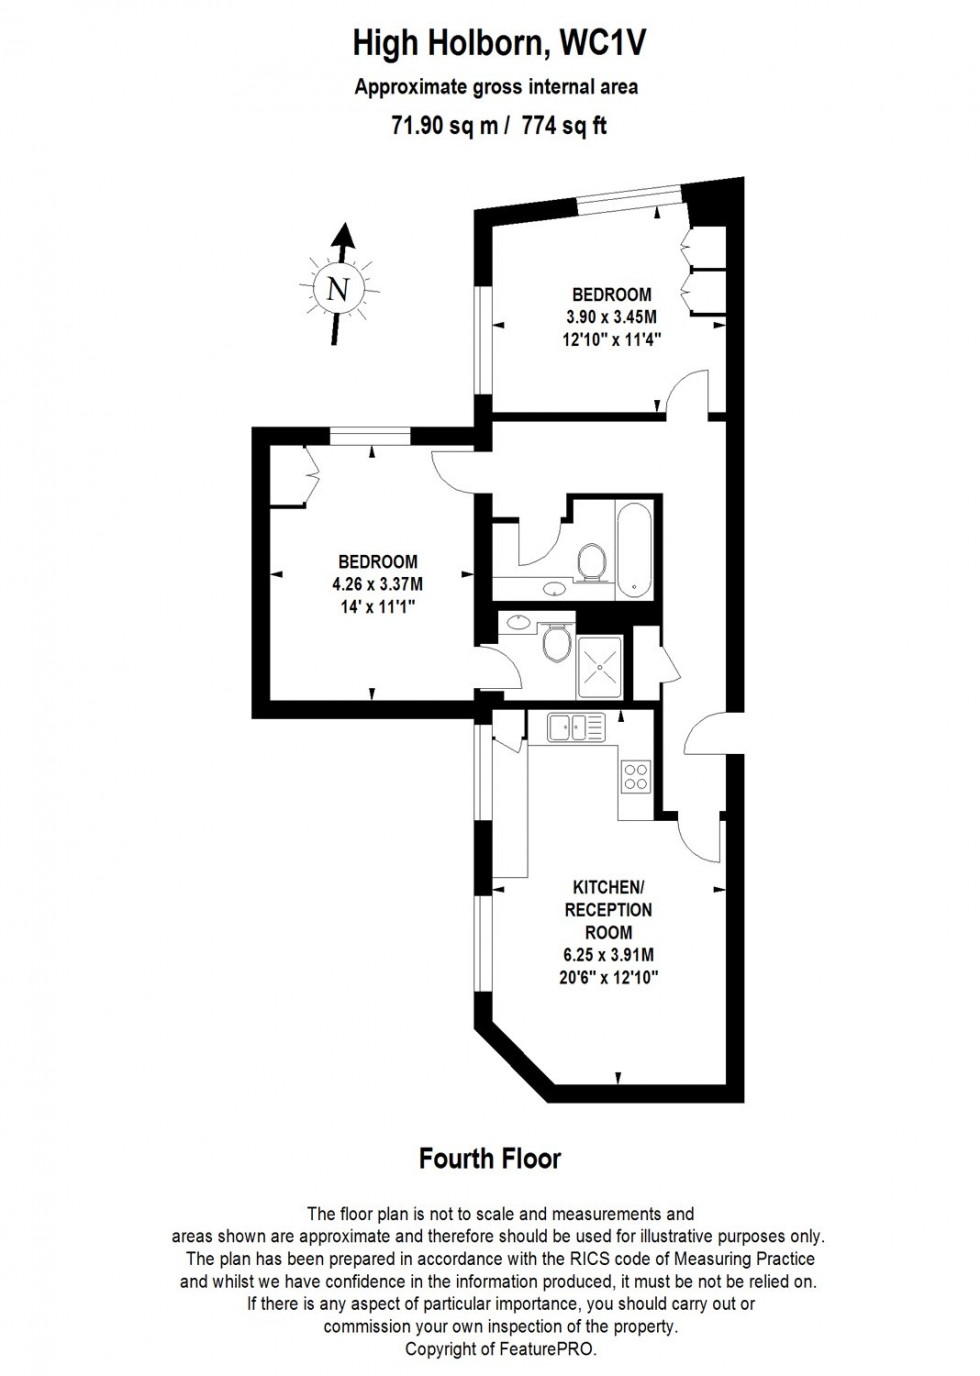 Floorplan for High Holborn, Clerkenwell, London